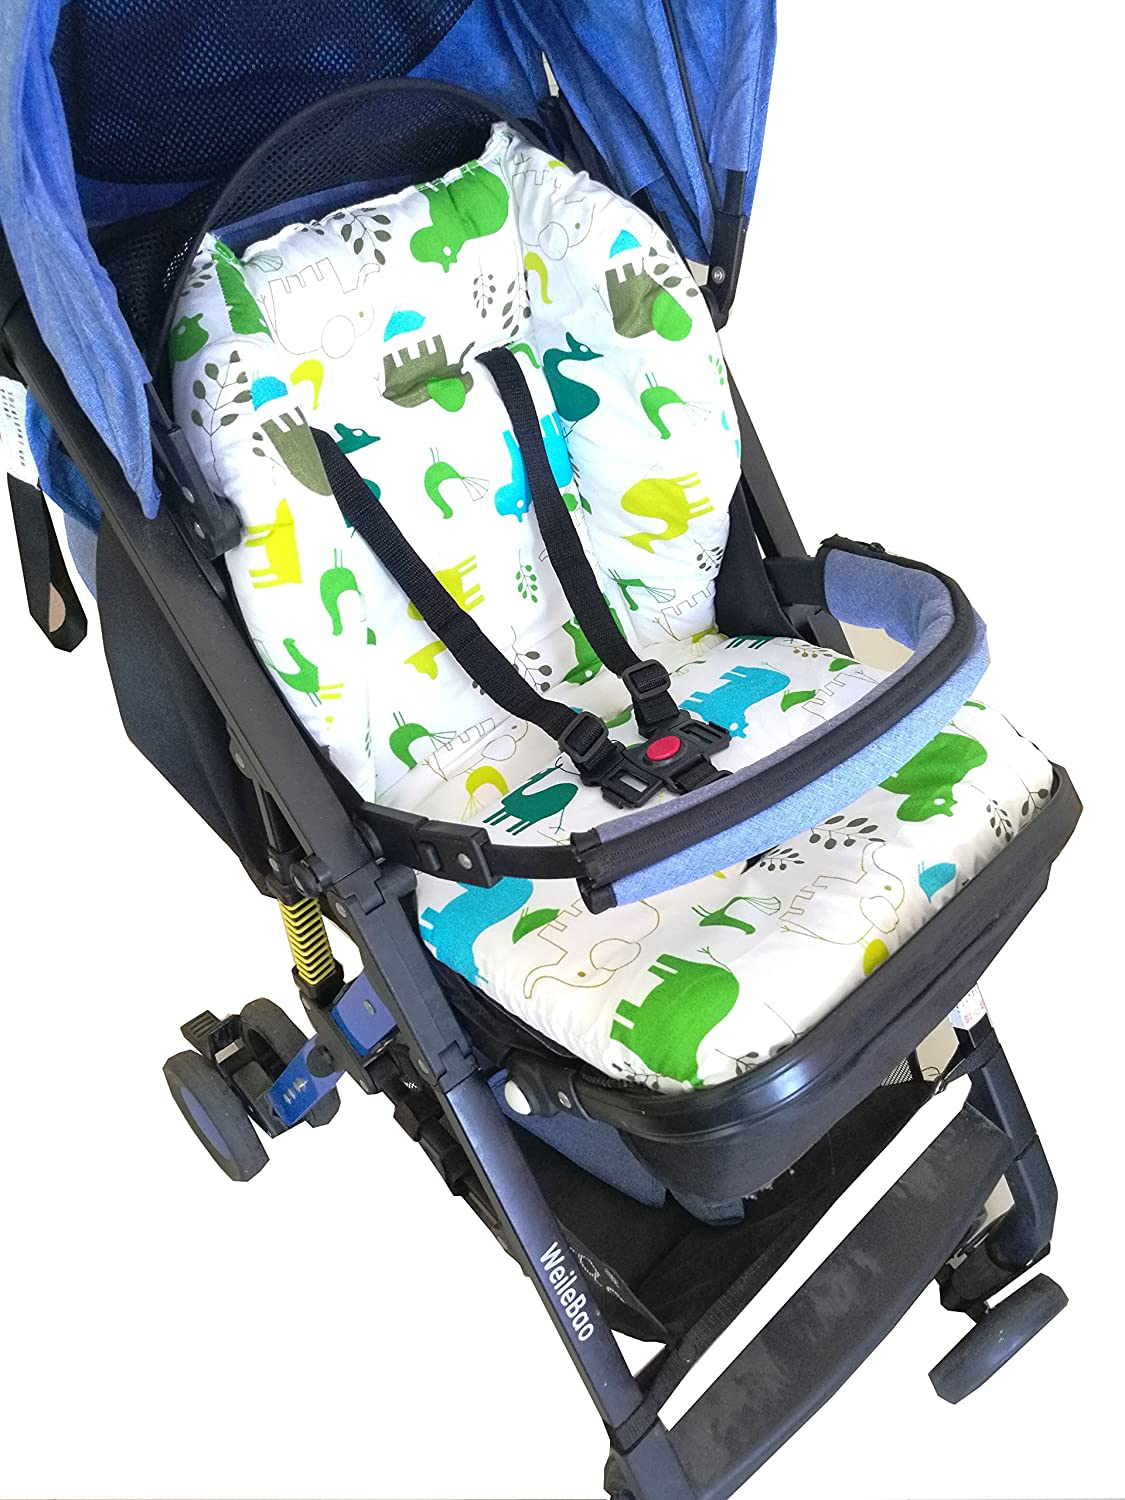 Twoworld Baby Stroller//Car//High Chair Seat Cushion Liner Mat Pad Cover Protector Breathable(Green)